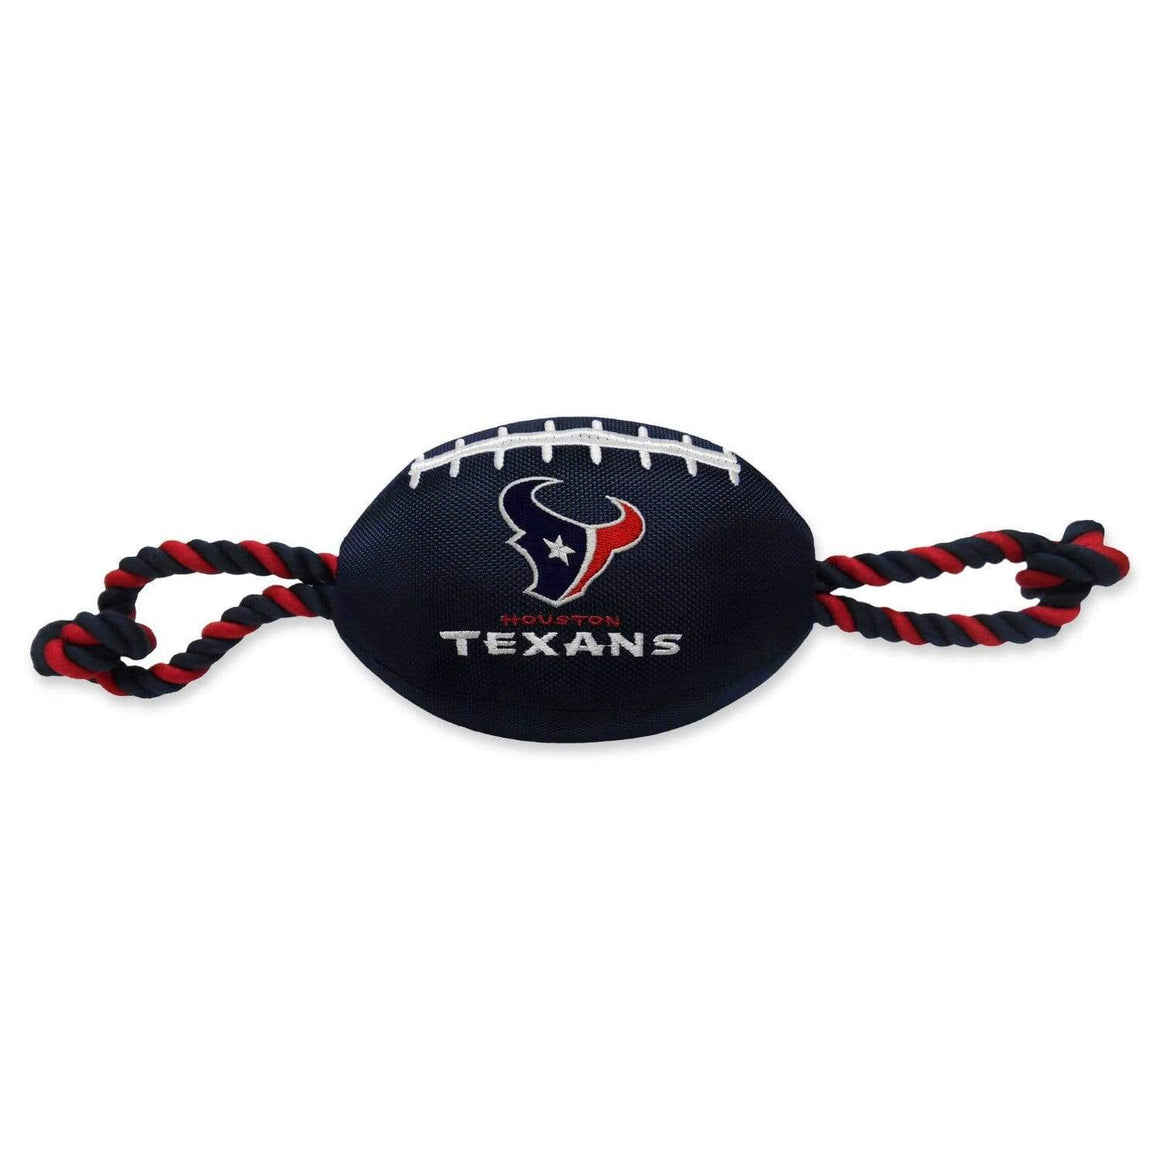 Pets First Dog-products NFL Houston Texans Pet Nylon Football